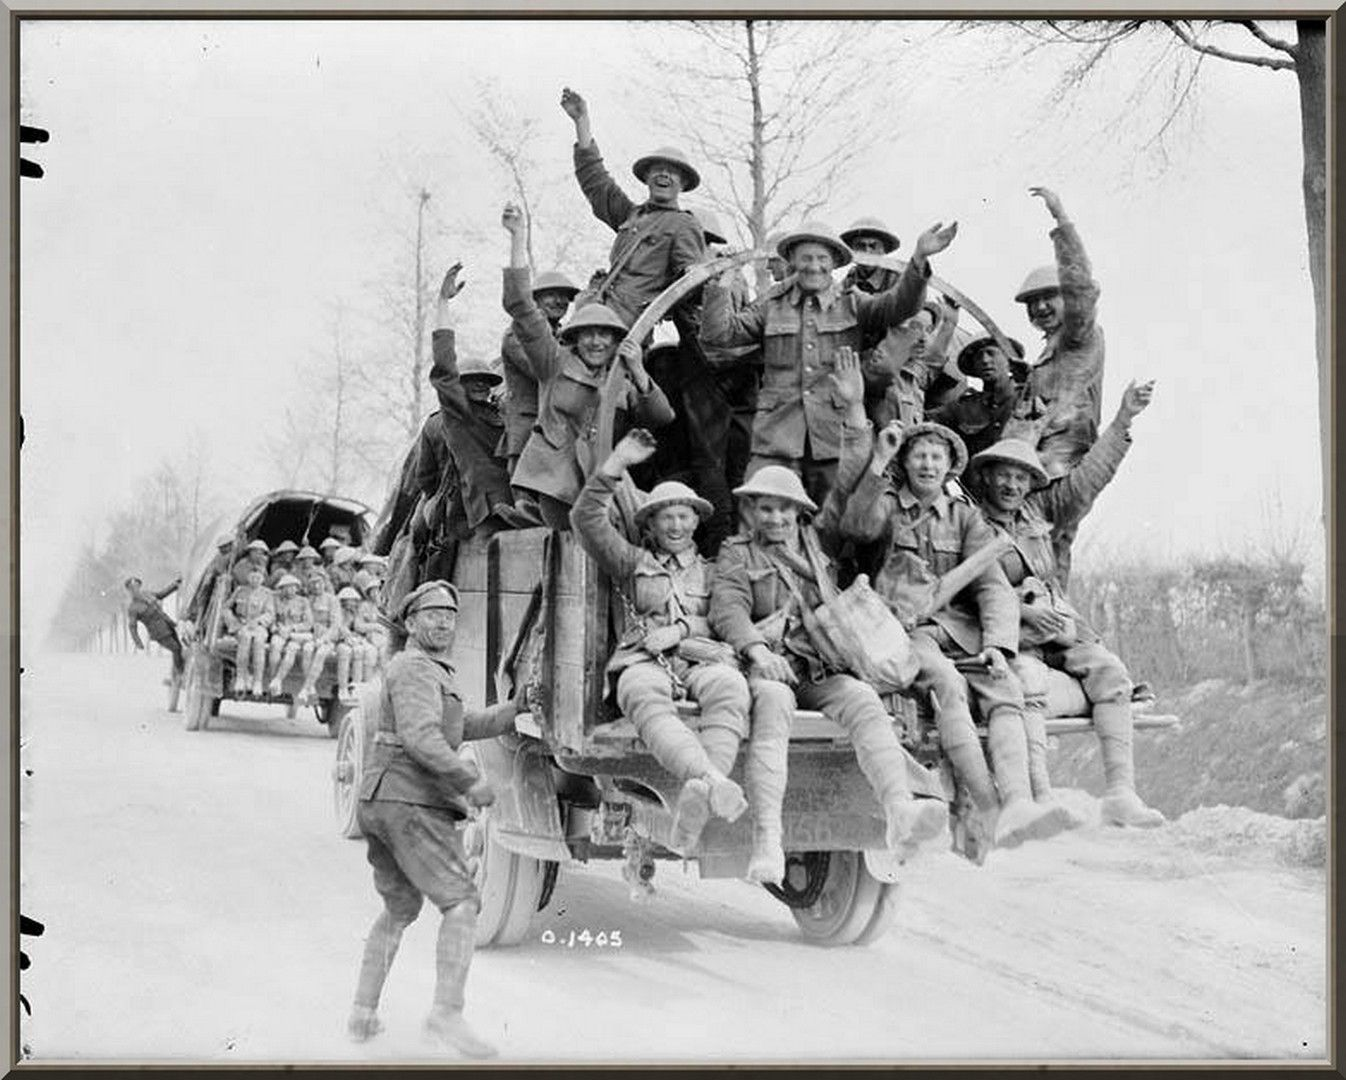 caf canadian iers returning from vimy ridge taken in  caf canadian iers returning from vimy ridge taken 1917 in the vicinity of vimy